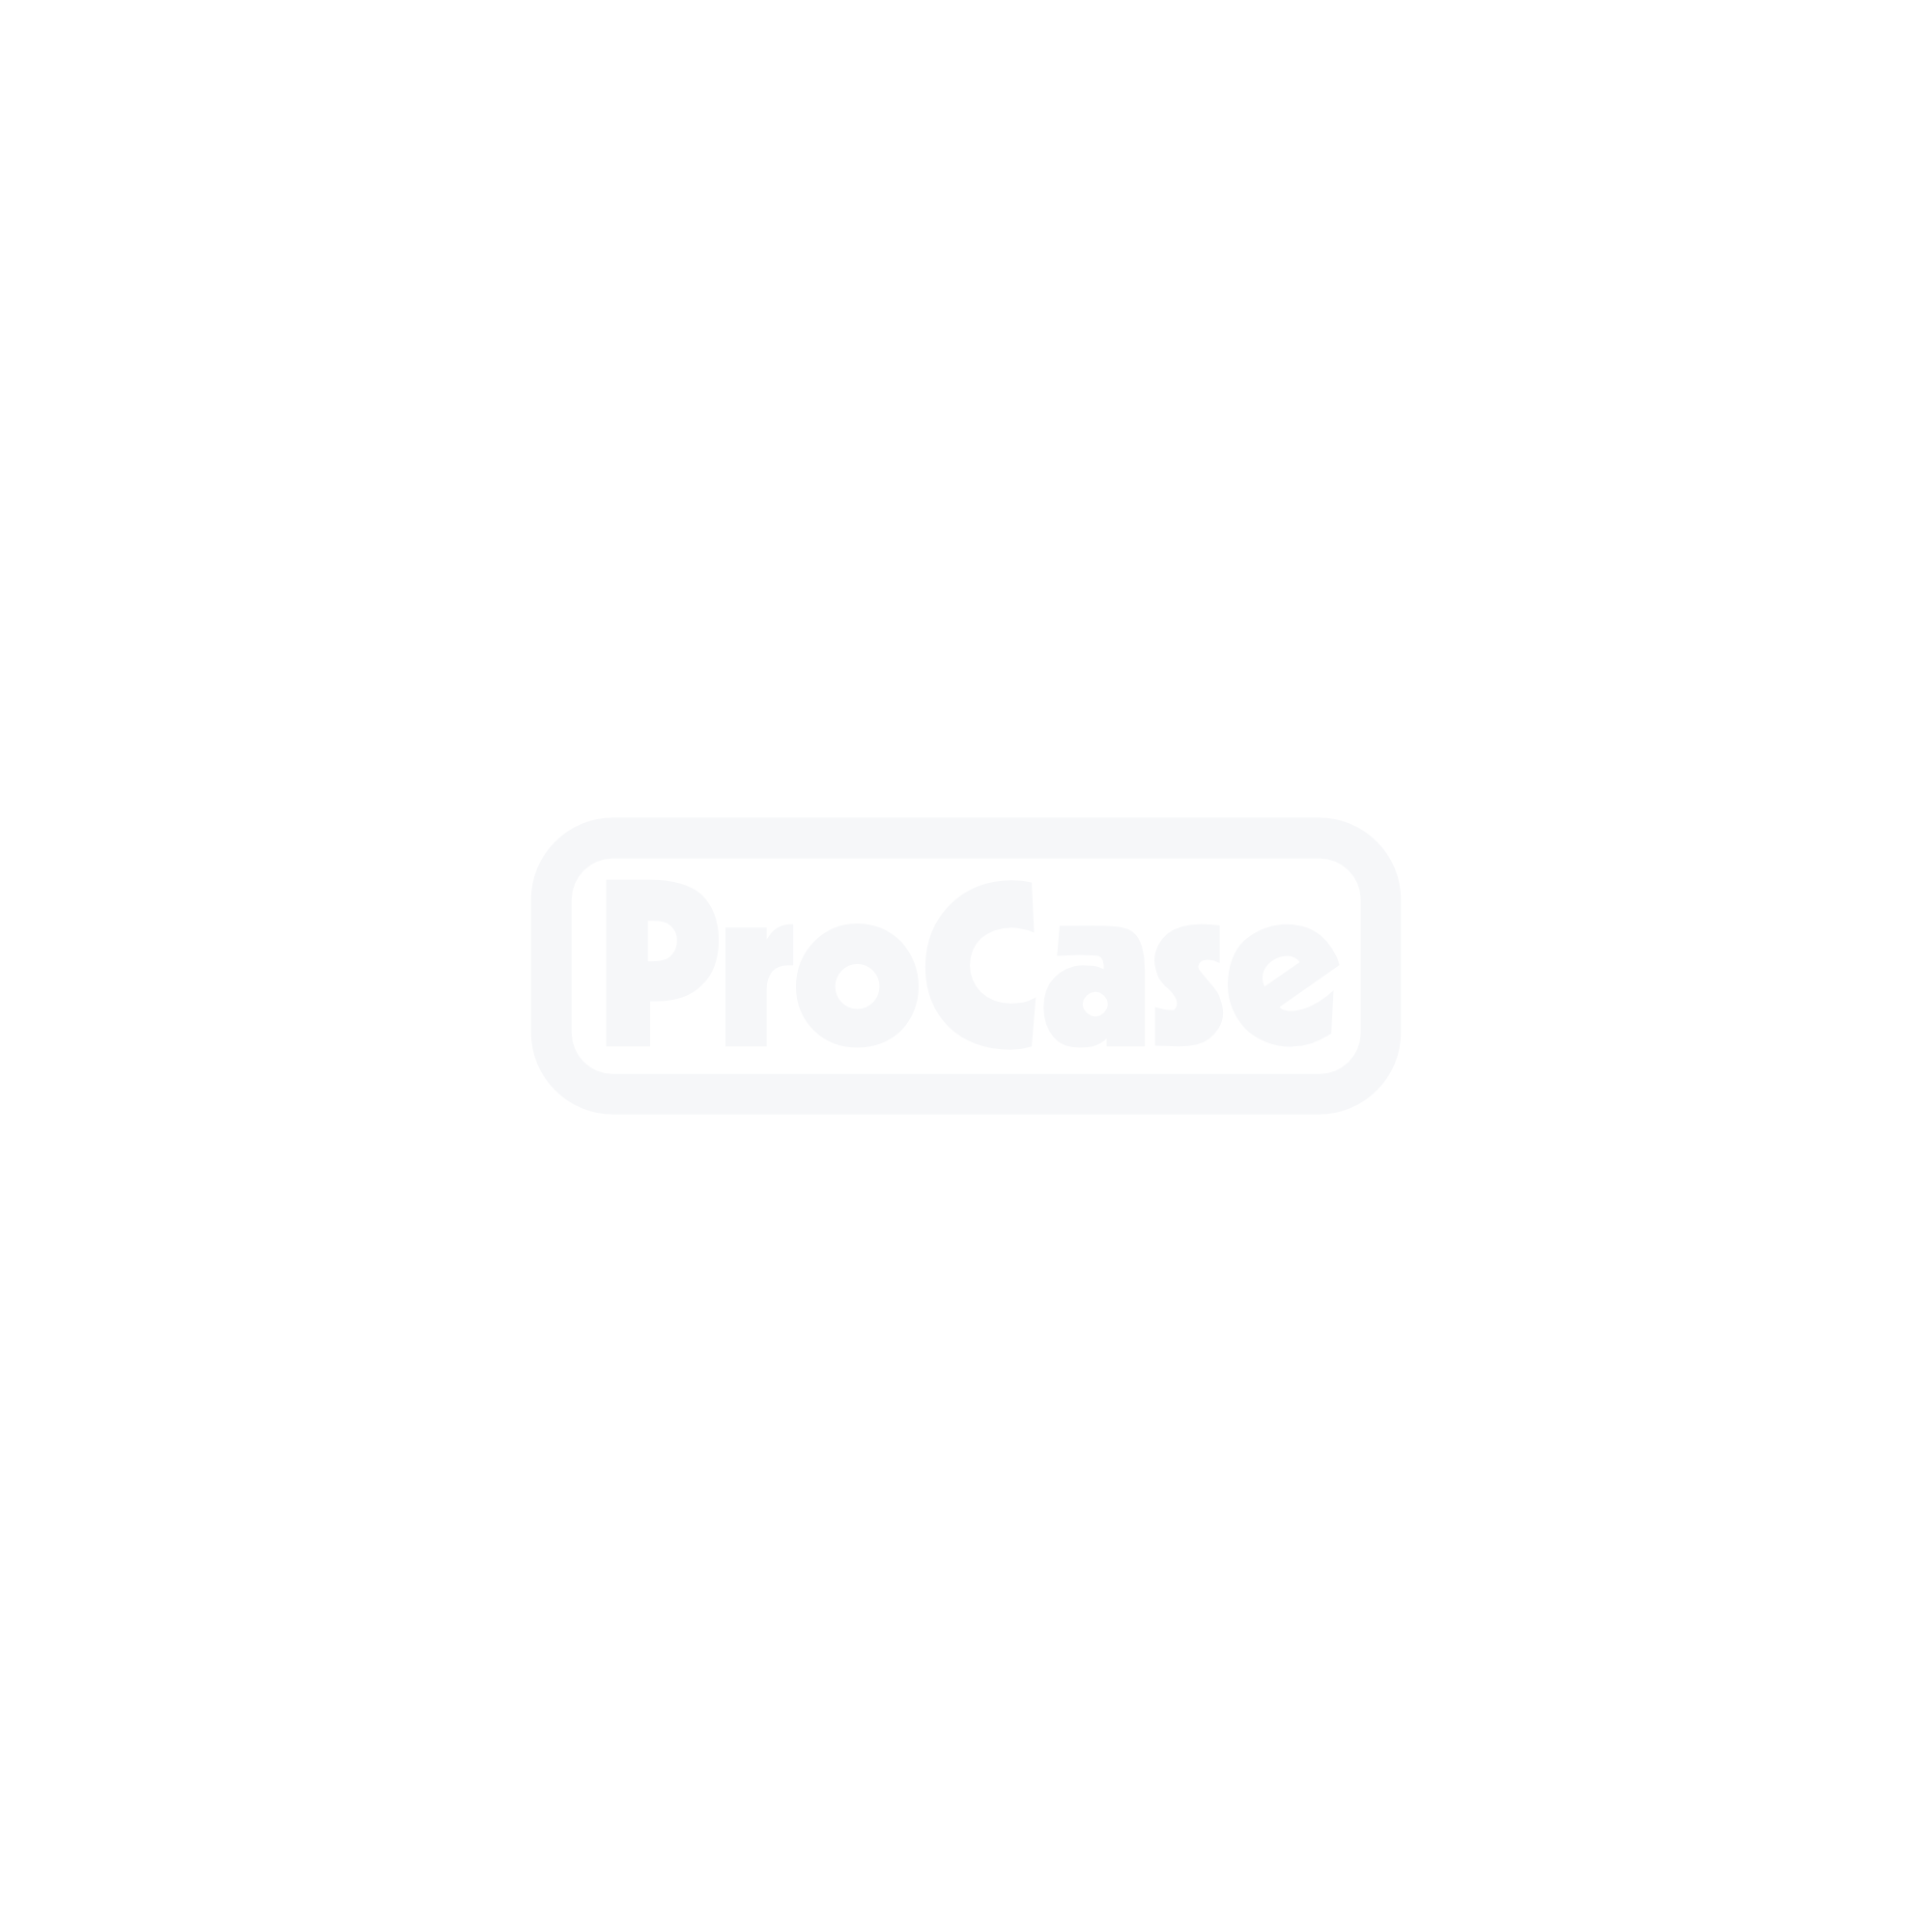 Flightcase für Sharp Aquos LC-70LE835E